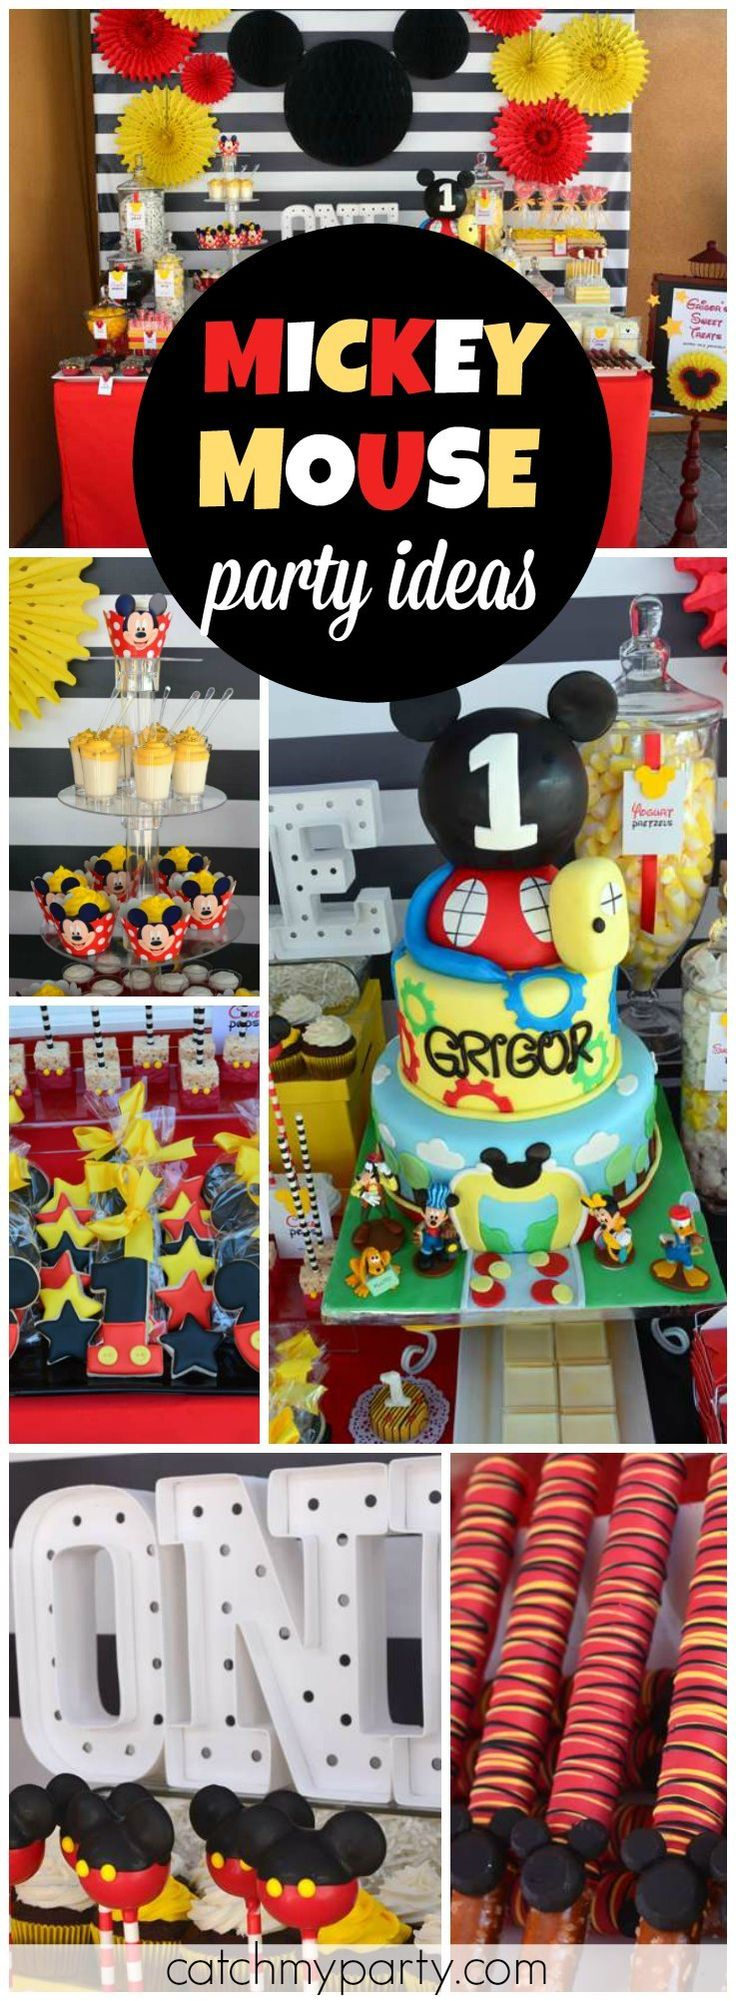 You must see this amazing Mickey Mouse 1st birthday party! See more party ideas at CatchMyParty.com!